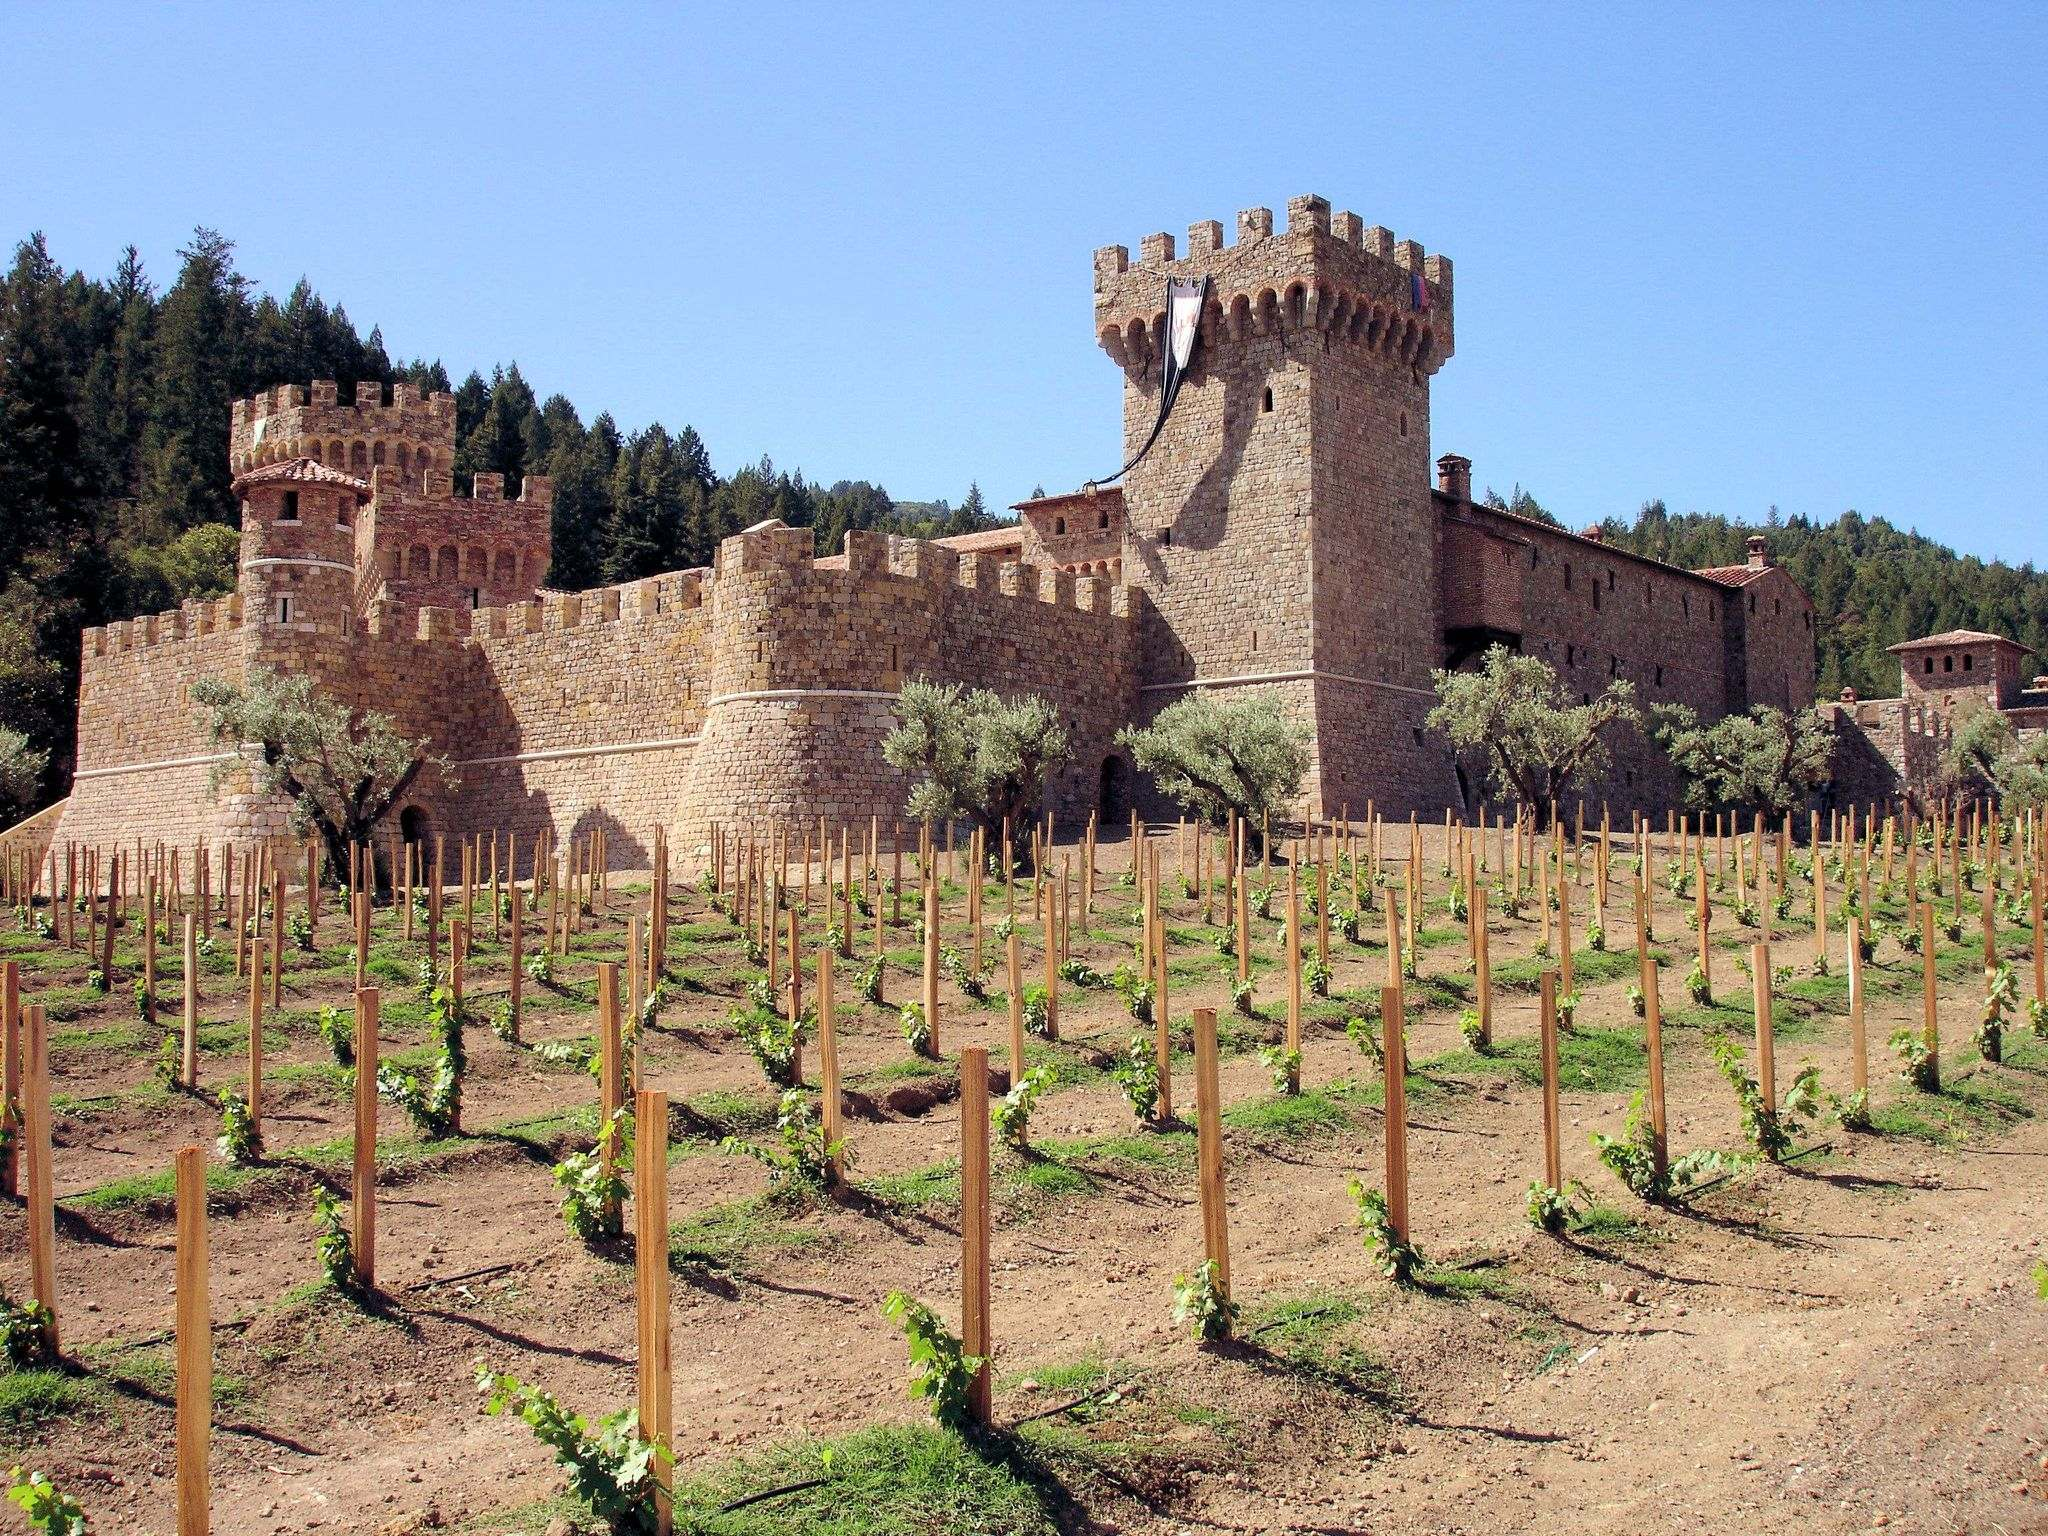 castello di amorosa Castello di Amorosa Winery in Napa Valley, California